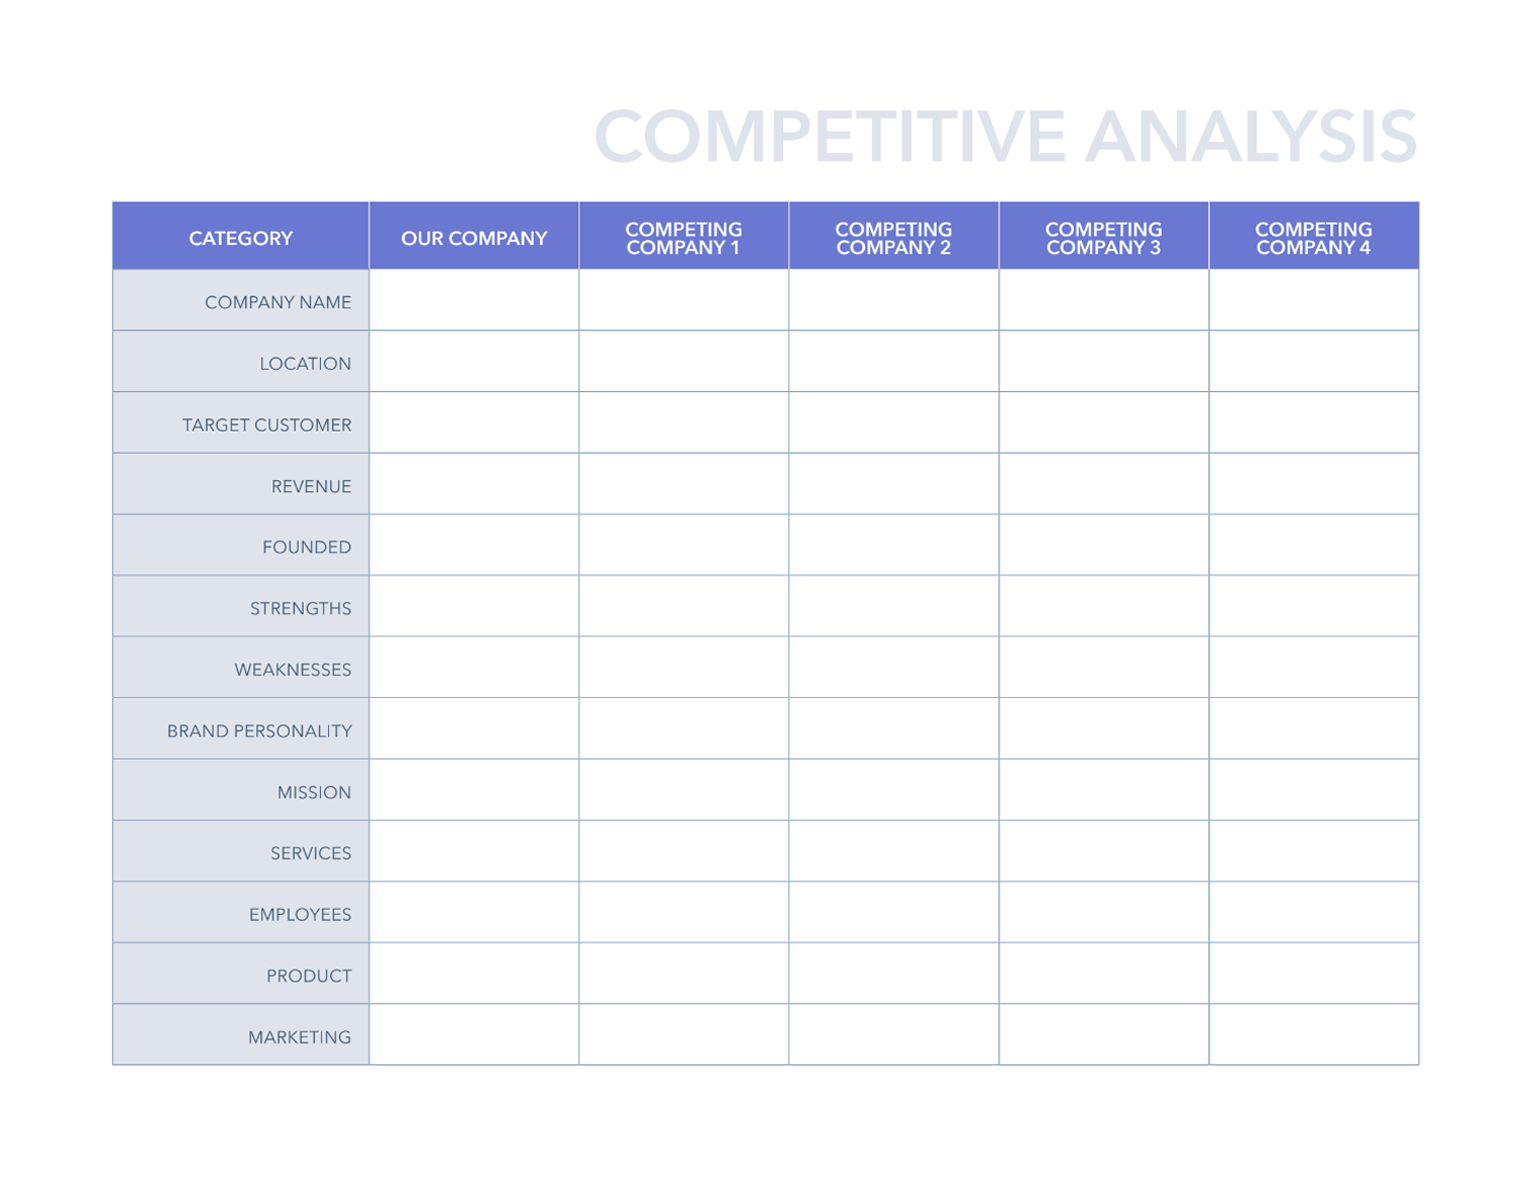 Free Excel Business Template from f.hubspotusercontent00.net